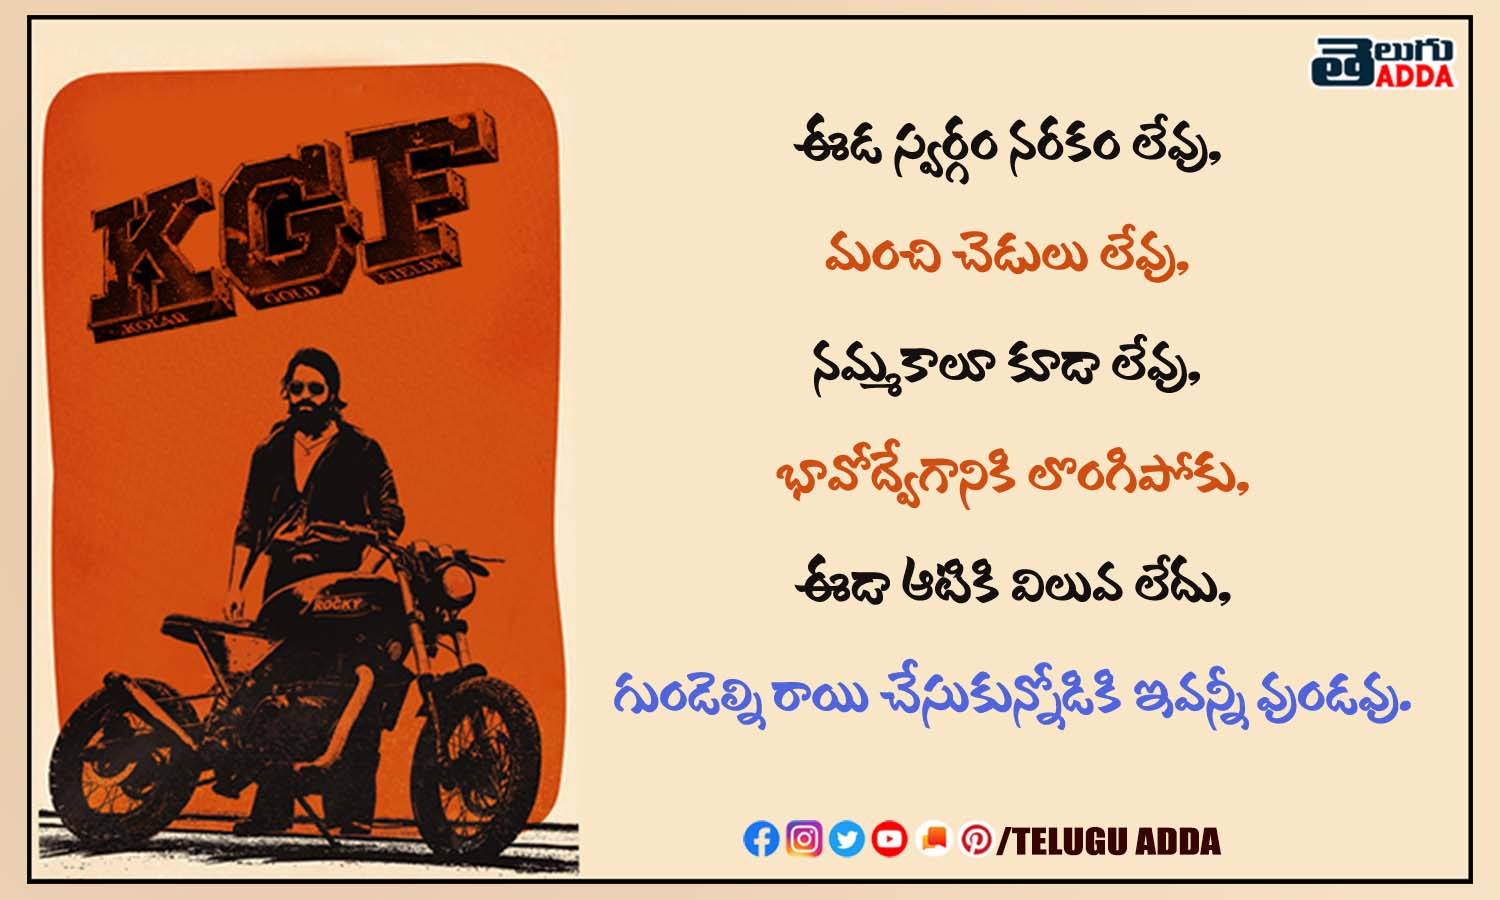 All Superhit and Powerful Dialogues of KGF